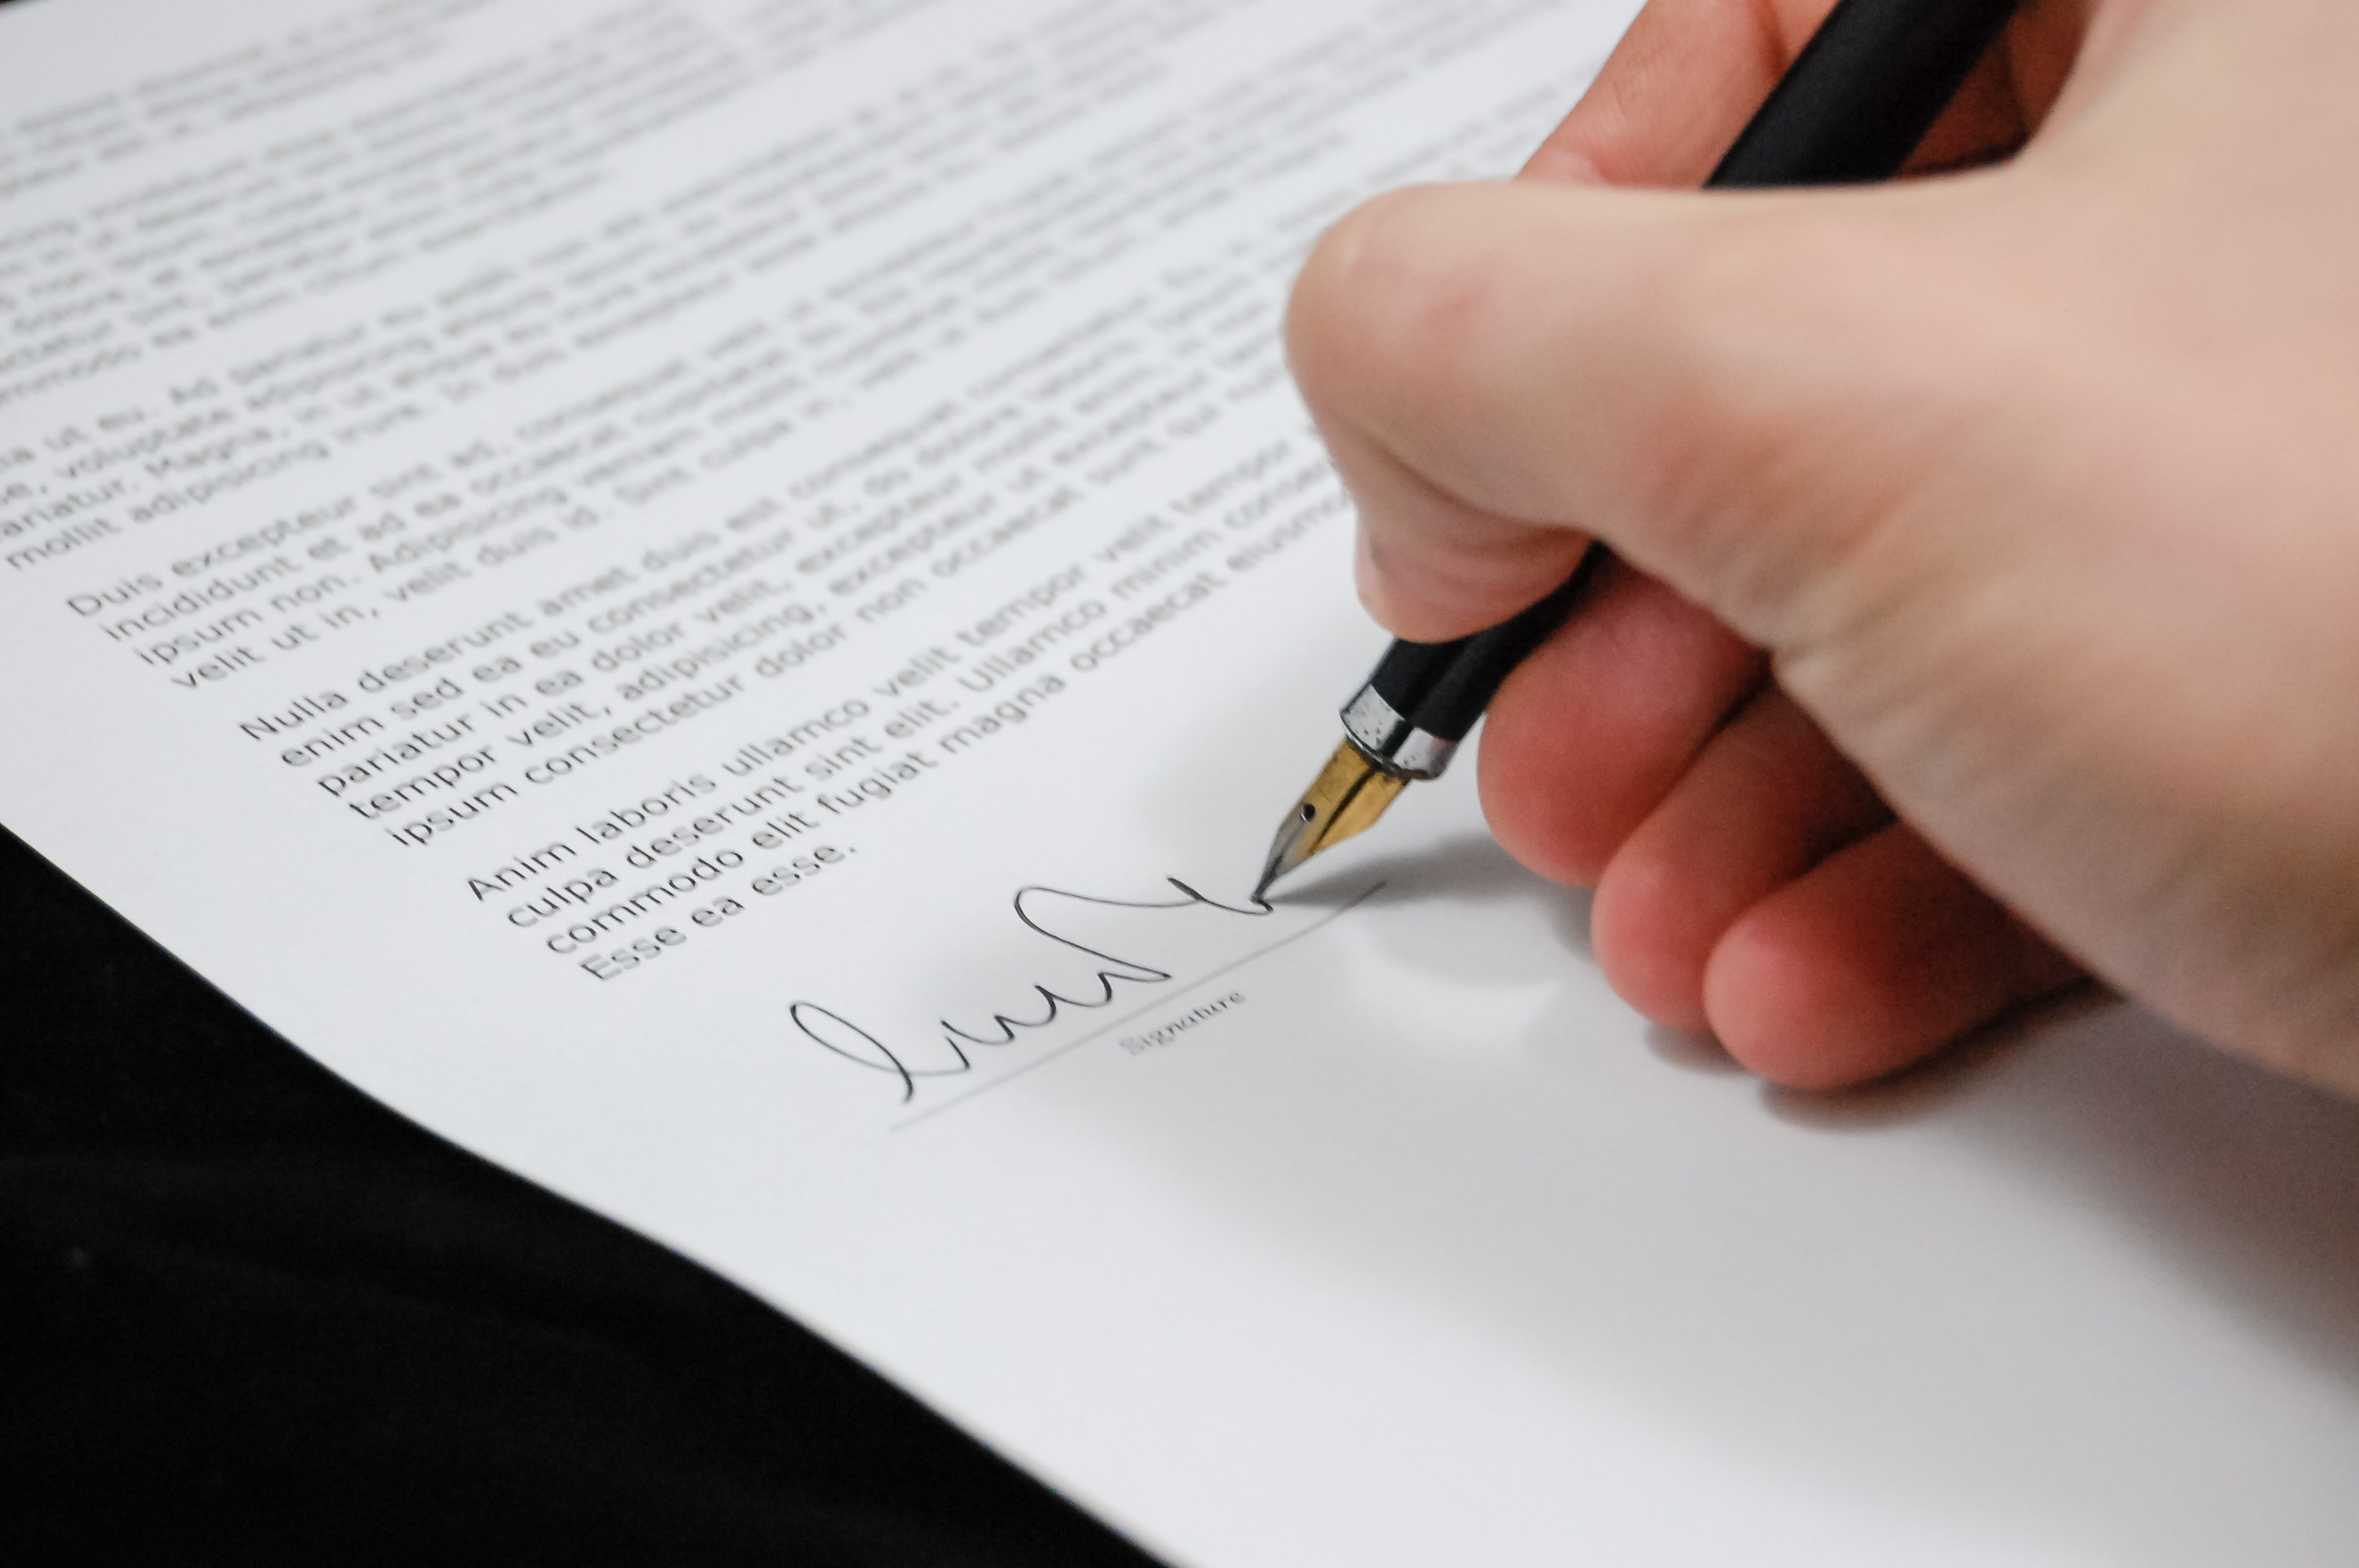 Hand holding pen, signing at the bottom of a document